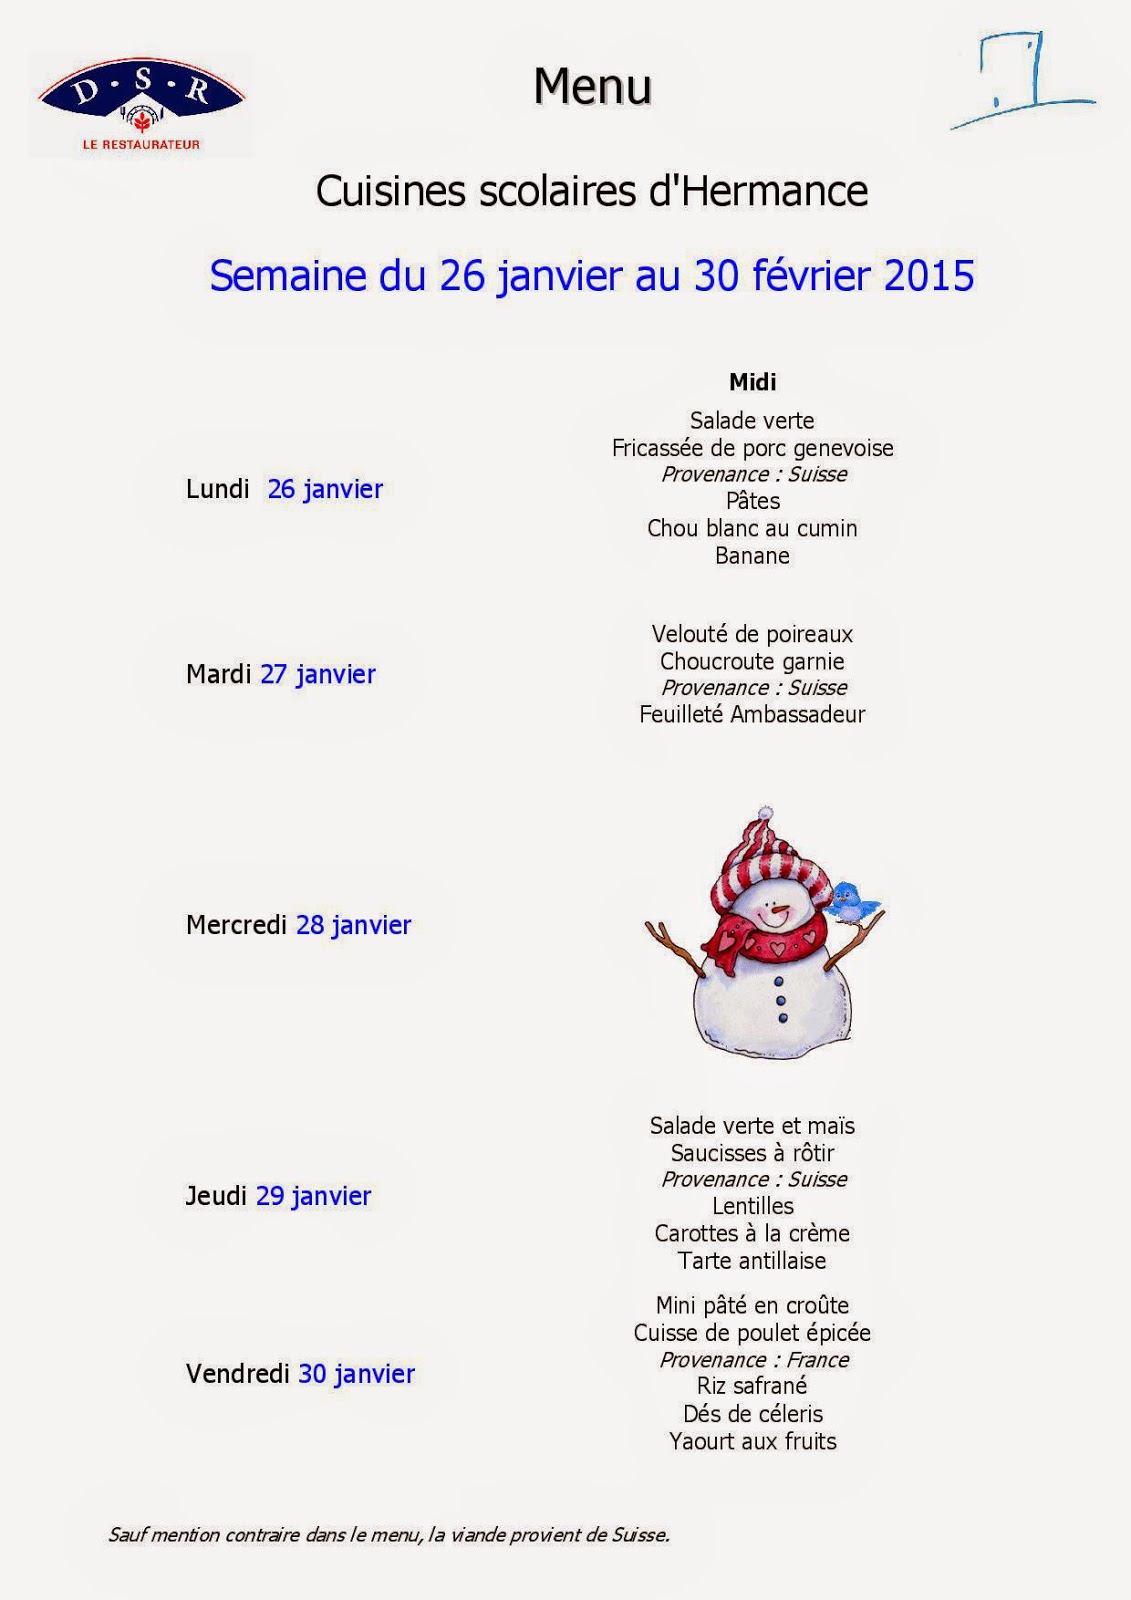 Hermance ptit midi restaurant scolaire hermance blog - Inscription 12 coups de midi numero de telephone ...